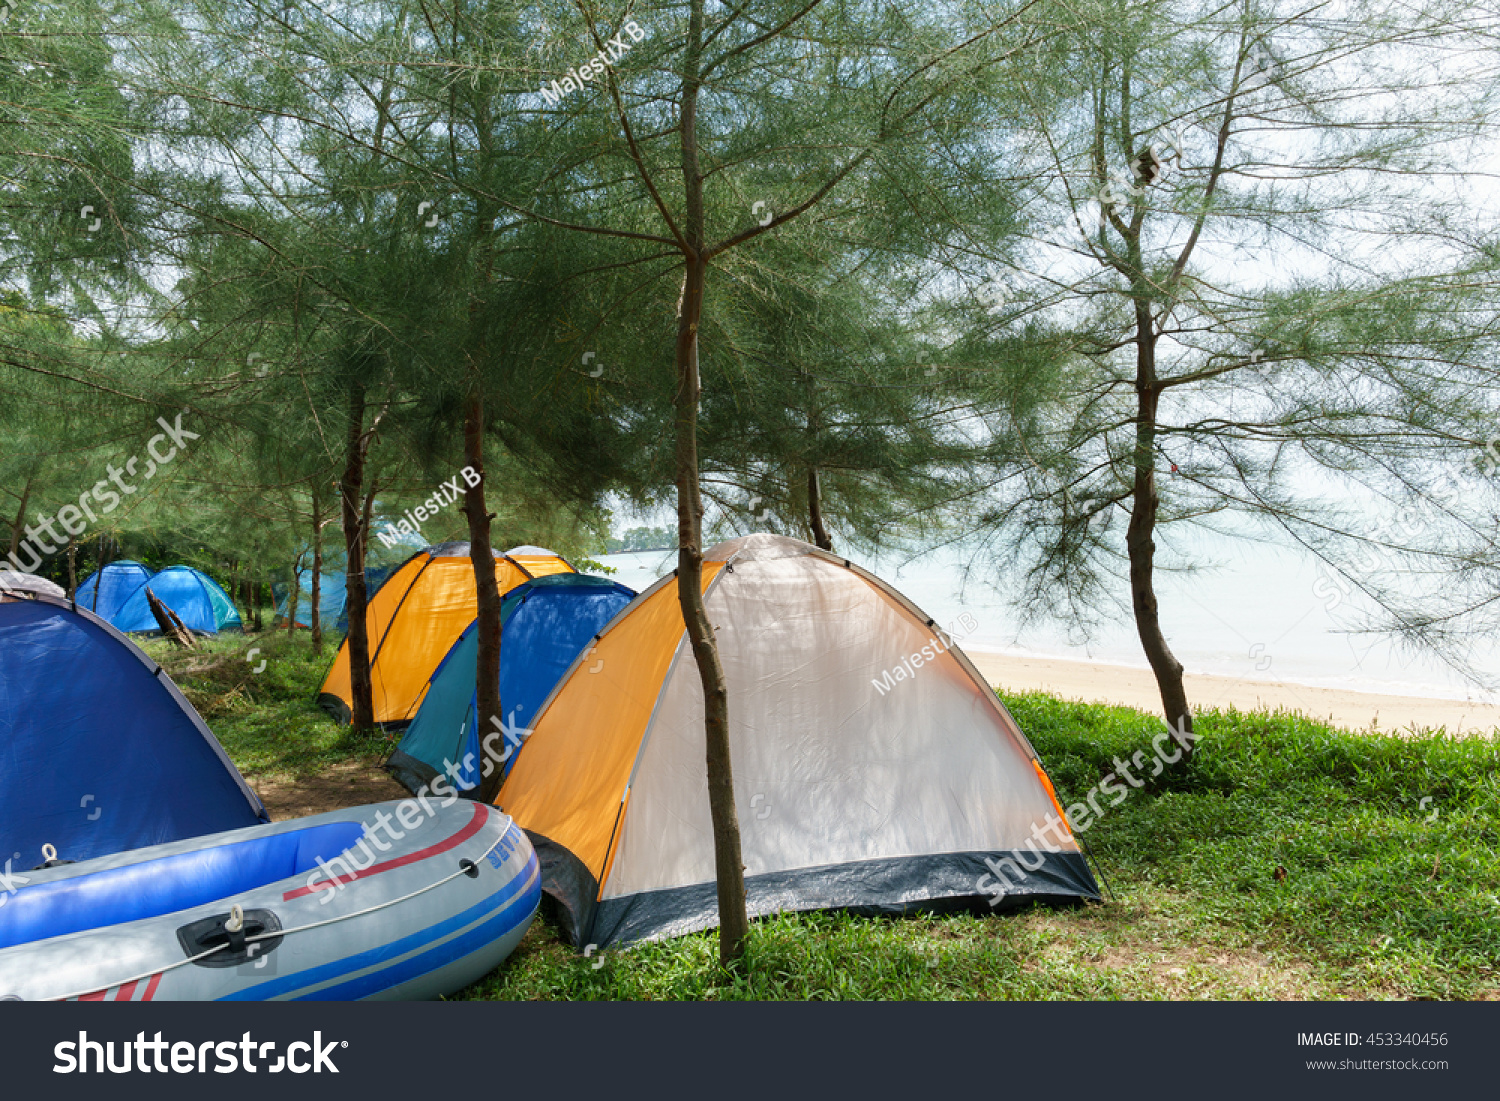 MALACCA MALAYSIA - February 8 2016  C&ing tents and boat near the beach at & Malacca Malaysia February 8 2016 Camping Stock Photo 453340456 ...